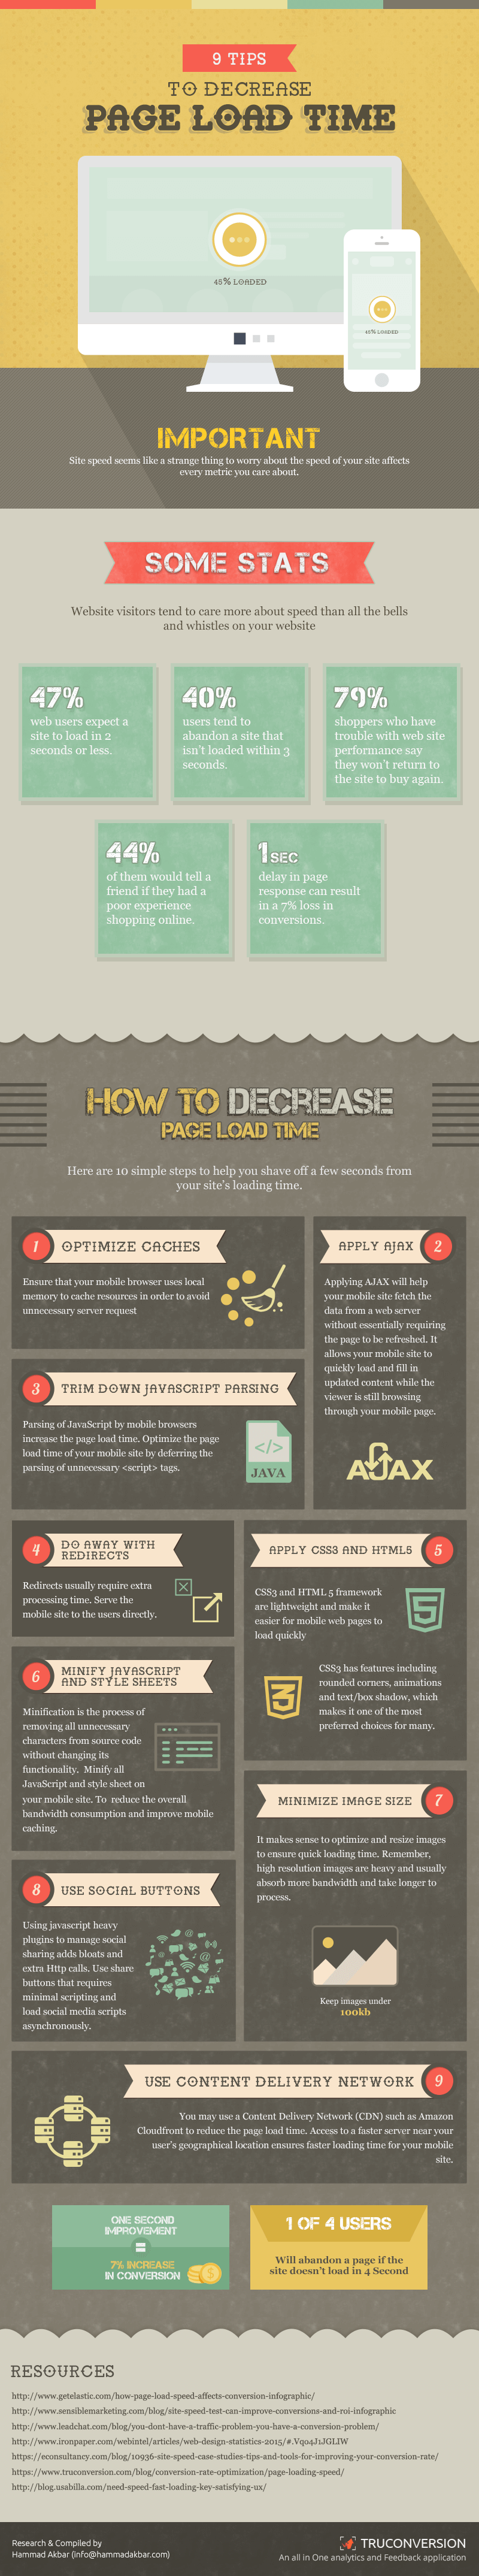 9 Tips To Decrease Page Load Time